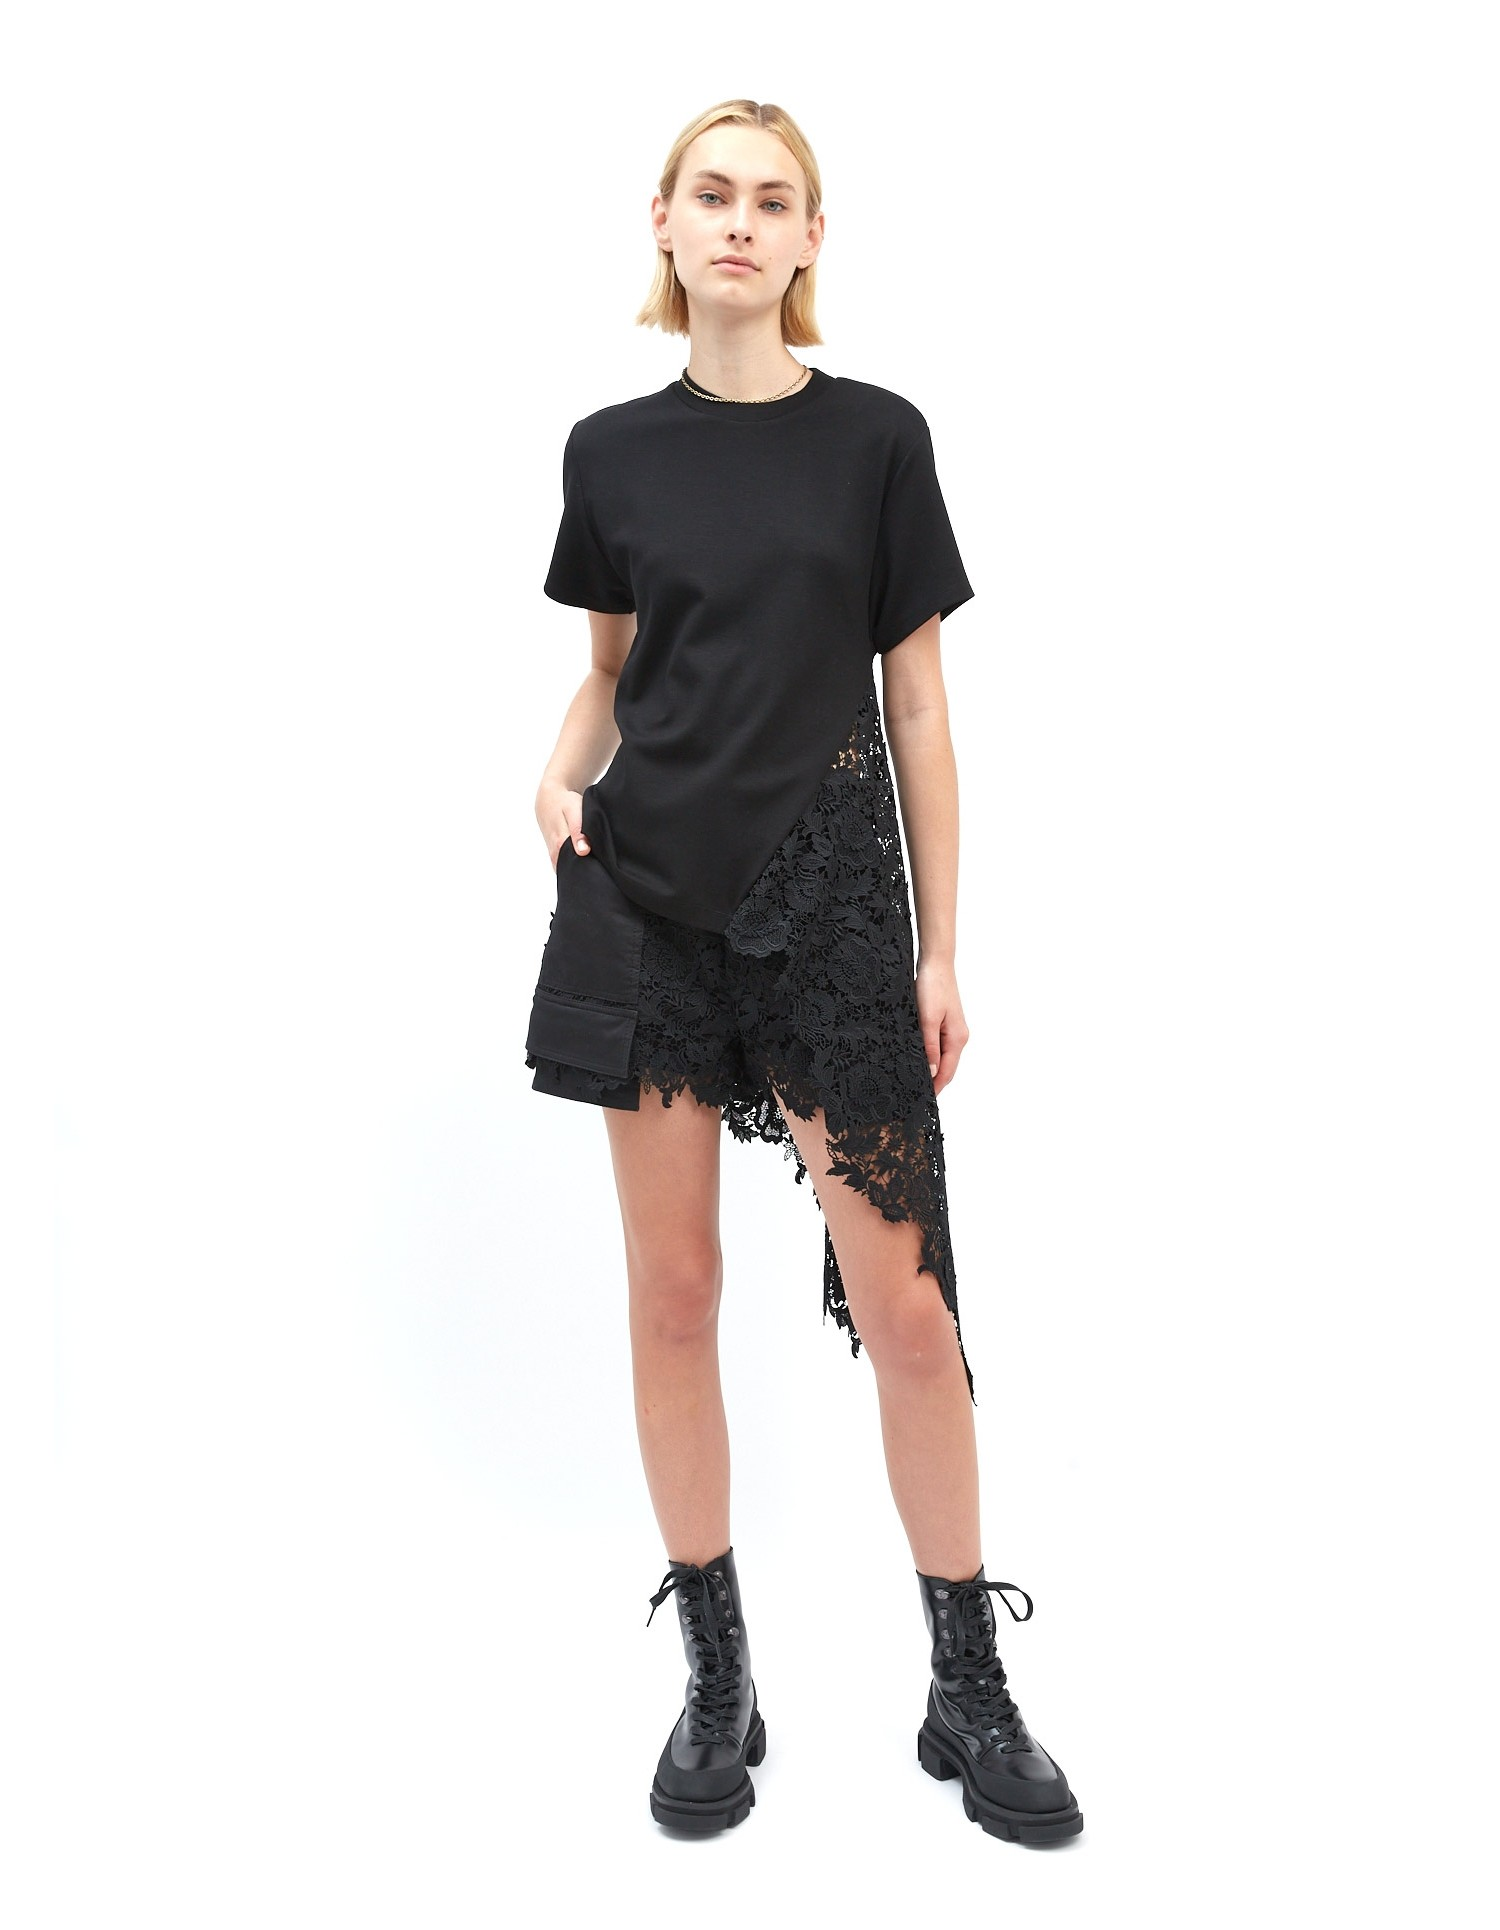 MONSE Lace Drawstring Tee in Black on Model Side View